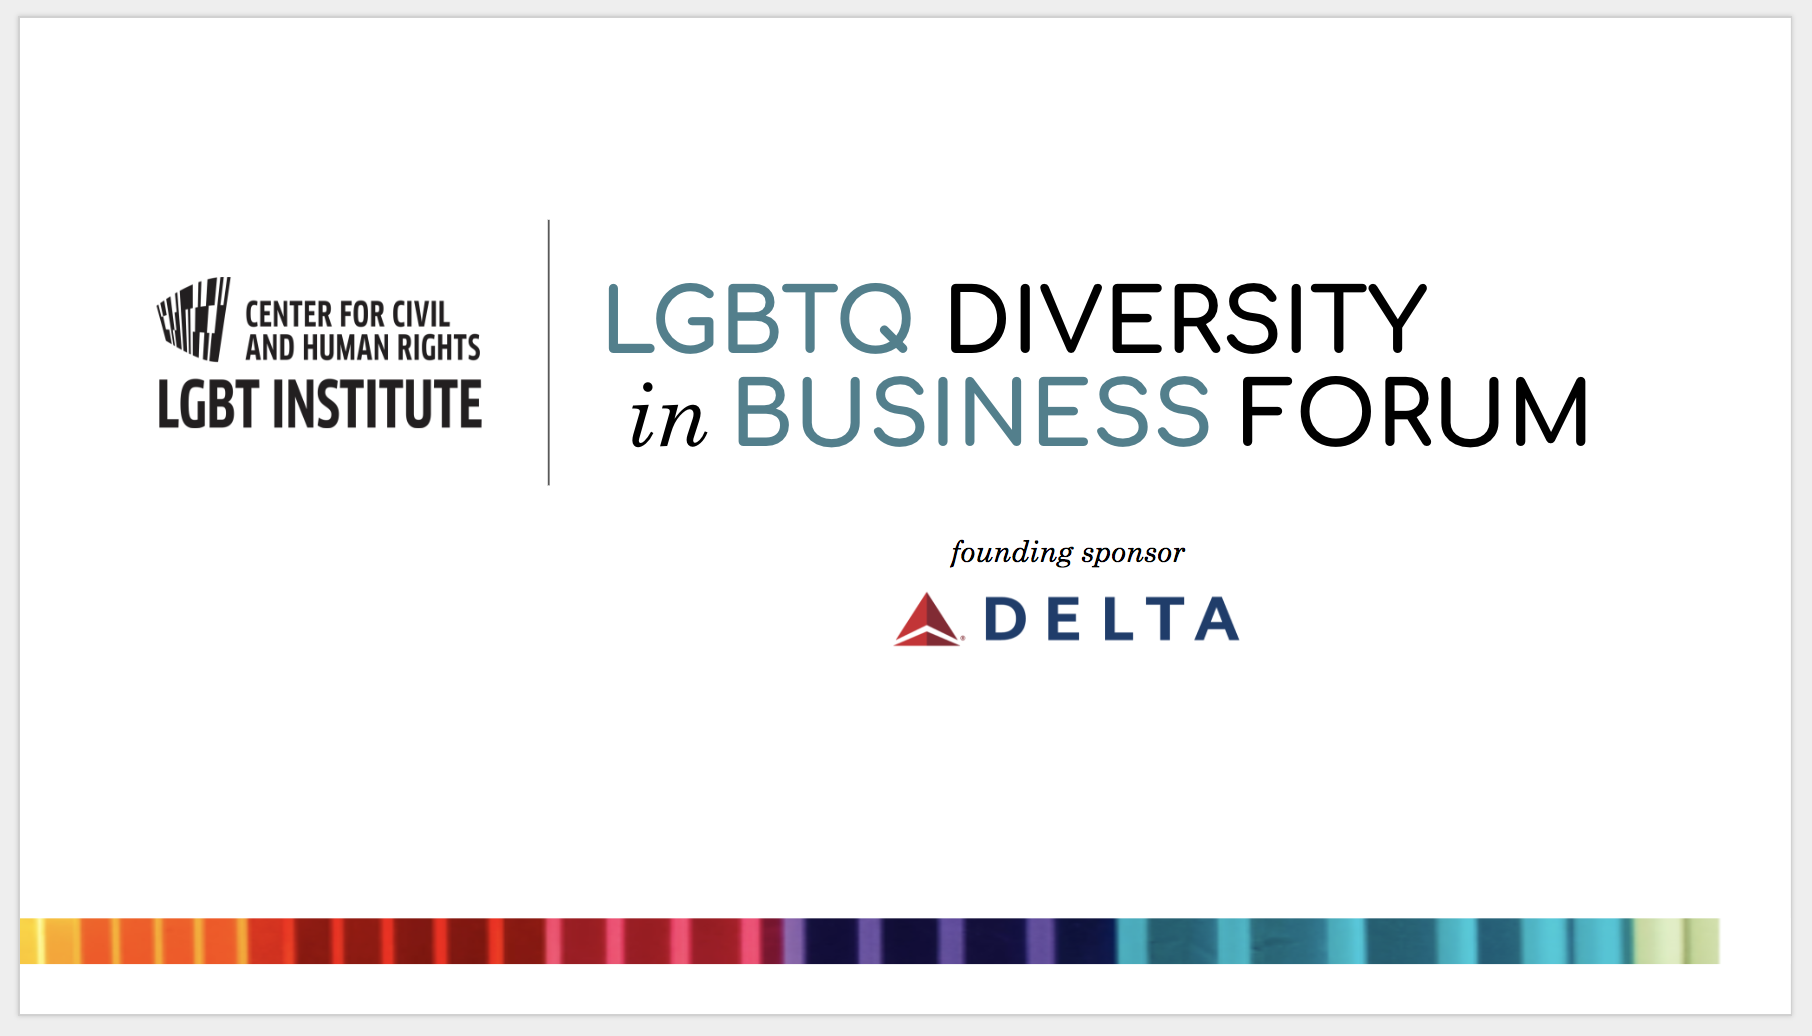 LGBTQ Diversity in Business Forum — LGBTQ Institute